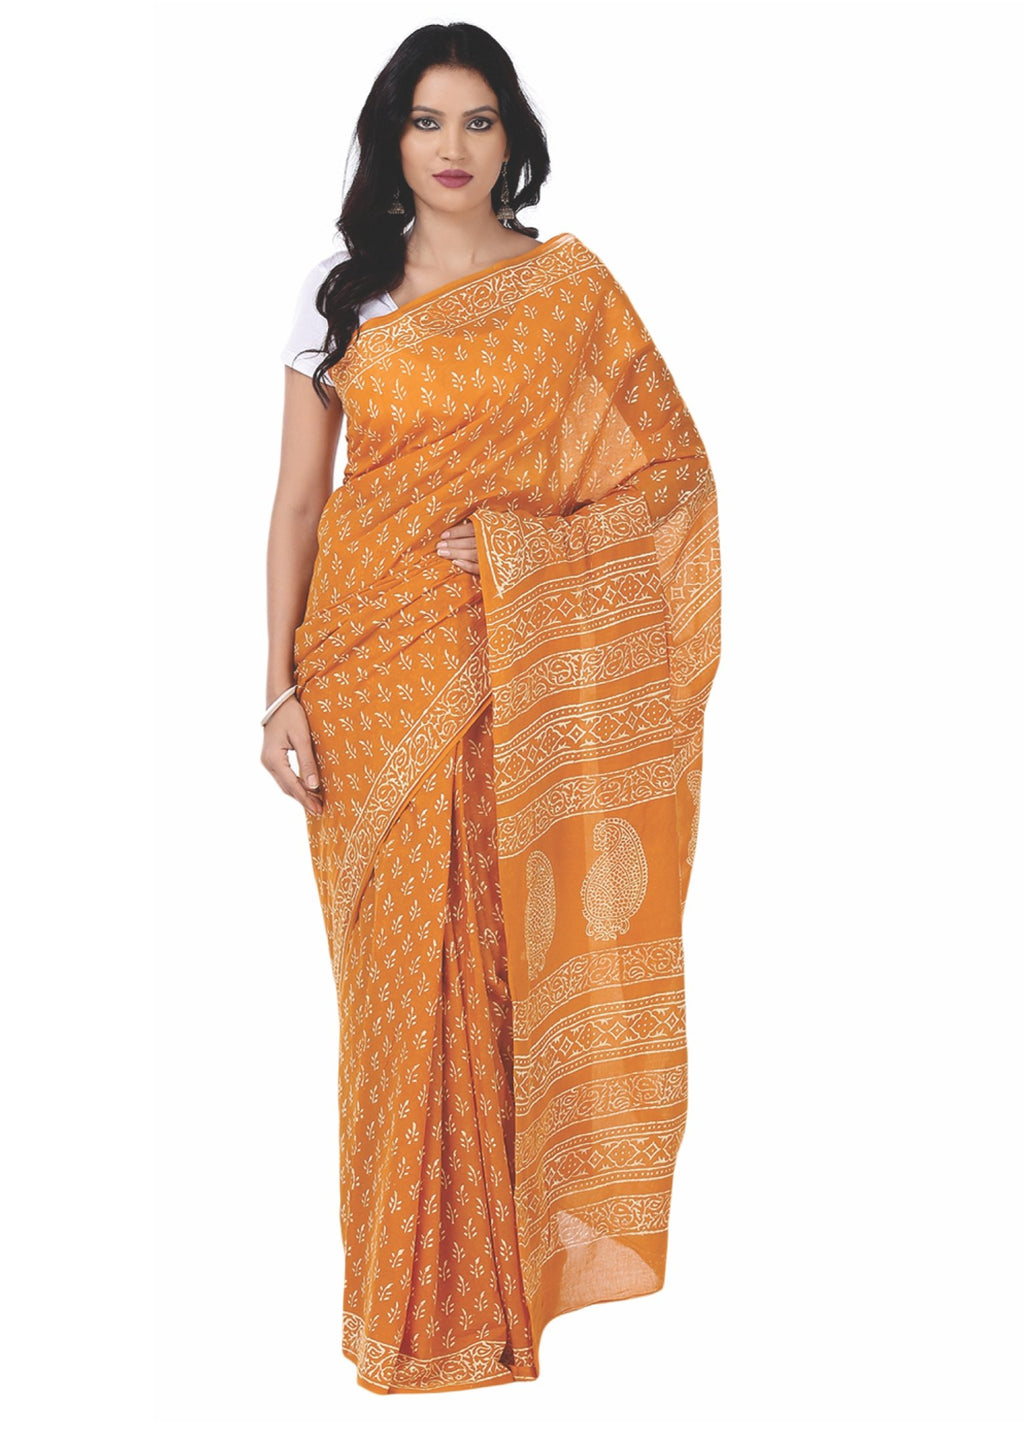 Orange Cotton Coloured Dabu Hand Block Print Handcrafted Cotton Saree-Saree-Kalakari India-BAPASA0036-Cotton, Dabu, Geographical Indication, Hand Blocks, Hand Crafted, Heritage Prints, Sarees, Sustainable Fabrics-[Linen,Ethnic,wear,Fashionista,Handloom,Handicraft,Indigo,blockprint,block,print,Cotton,Chanderi,Blue, latest,classy,party,bollywood,trendy,summer,style,traditional,formal,elegant,unique,style,hand,block,print, dabu,booti,gift,present,glamorous,affordable,collectible,Sari,Saree,printed,